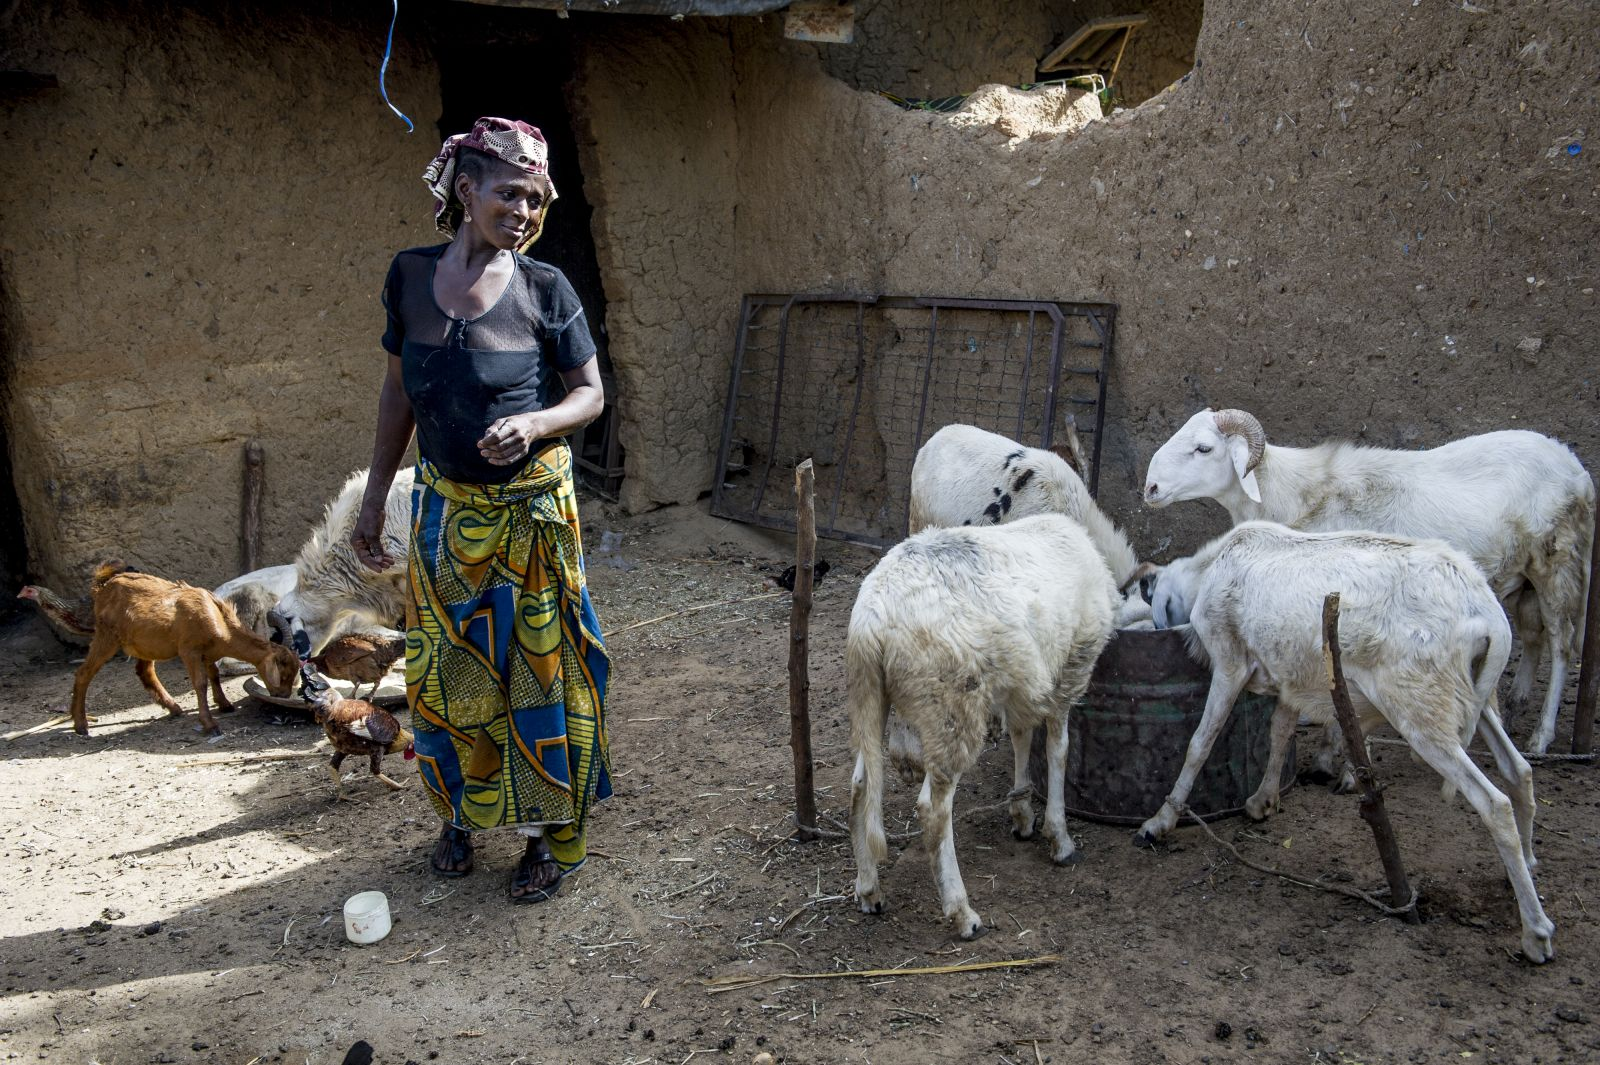 A savings and loan club is helping Ummi Lawal and several thousand women develop small businesses and contribute to their family income. Ummi Lawal started with sugar cane and now raises and sells goats.